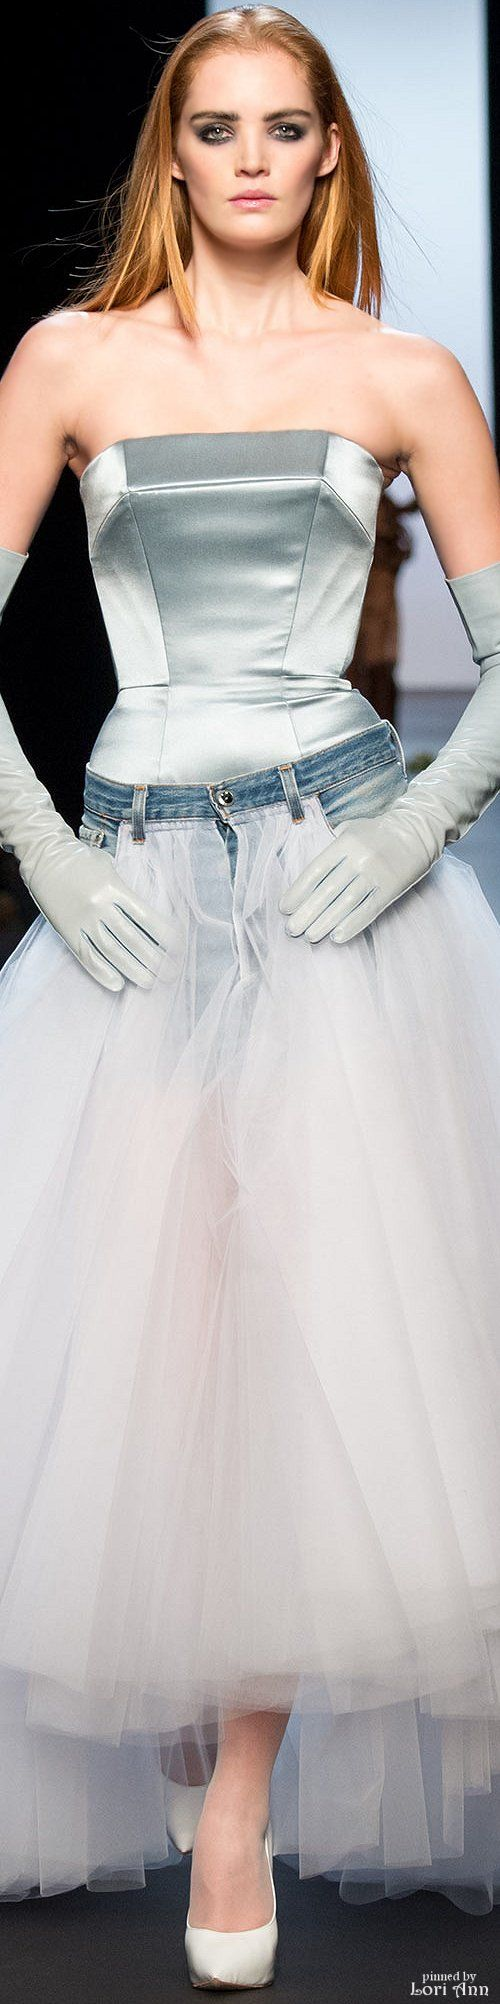 Jean Paul Gaultier S-15: jeans + tulle skirt, satin bodice, long gloves.